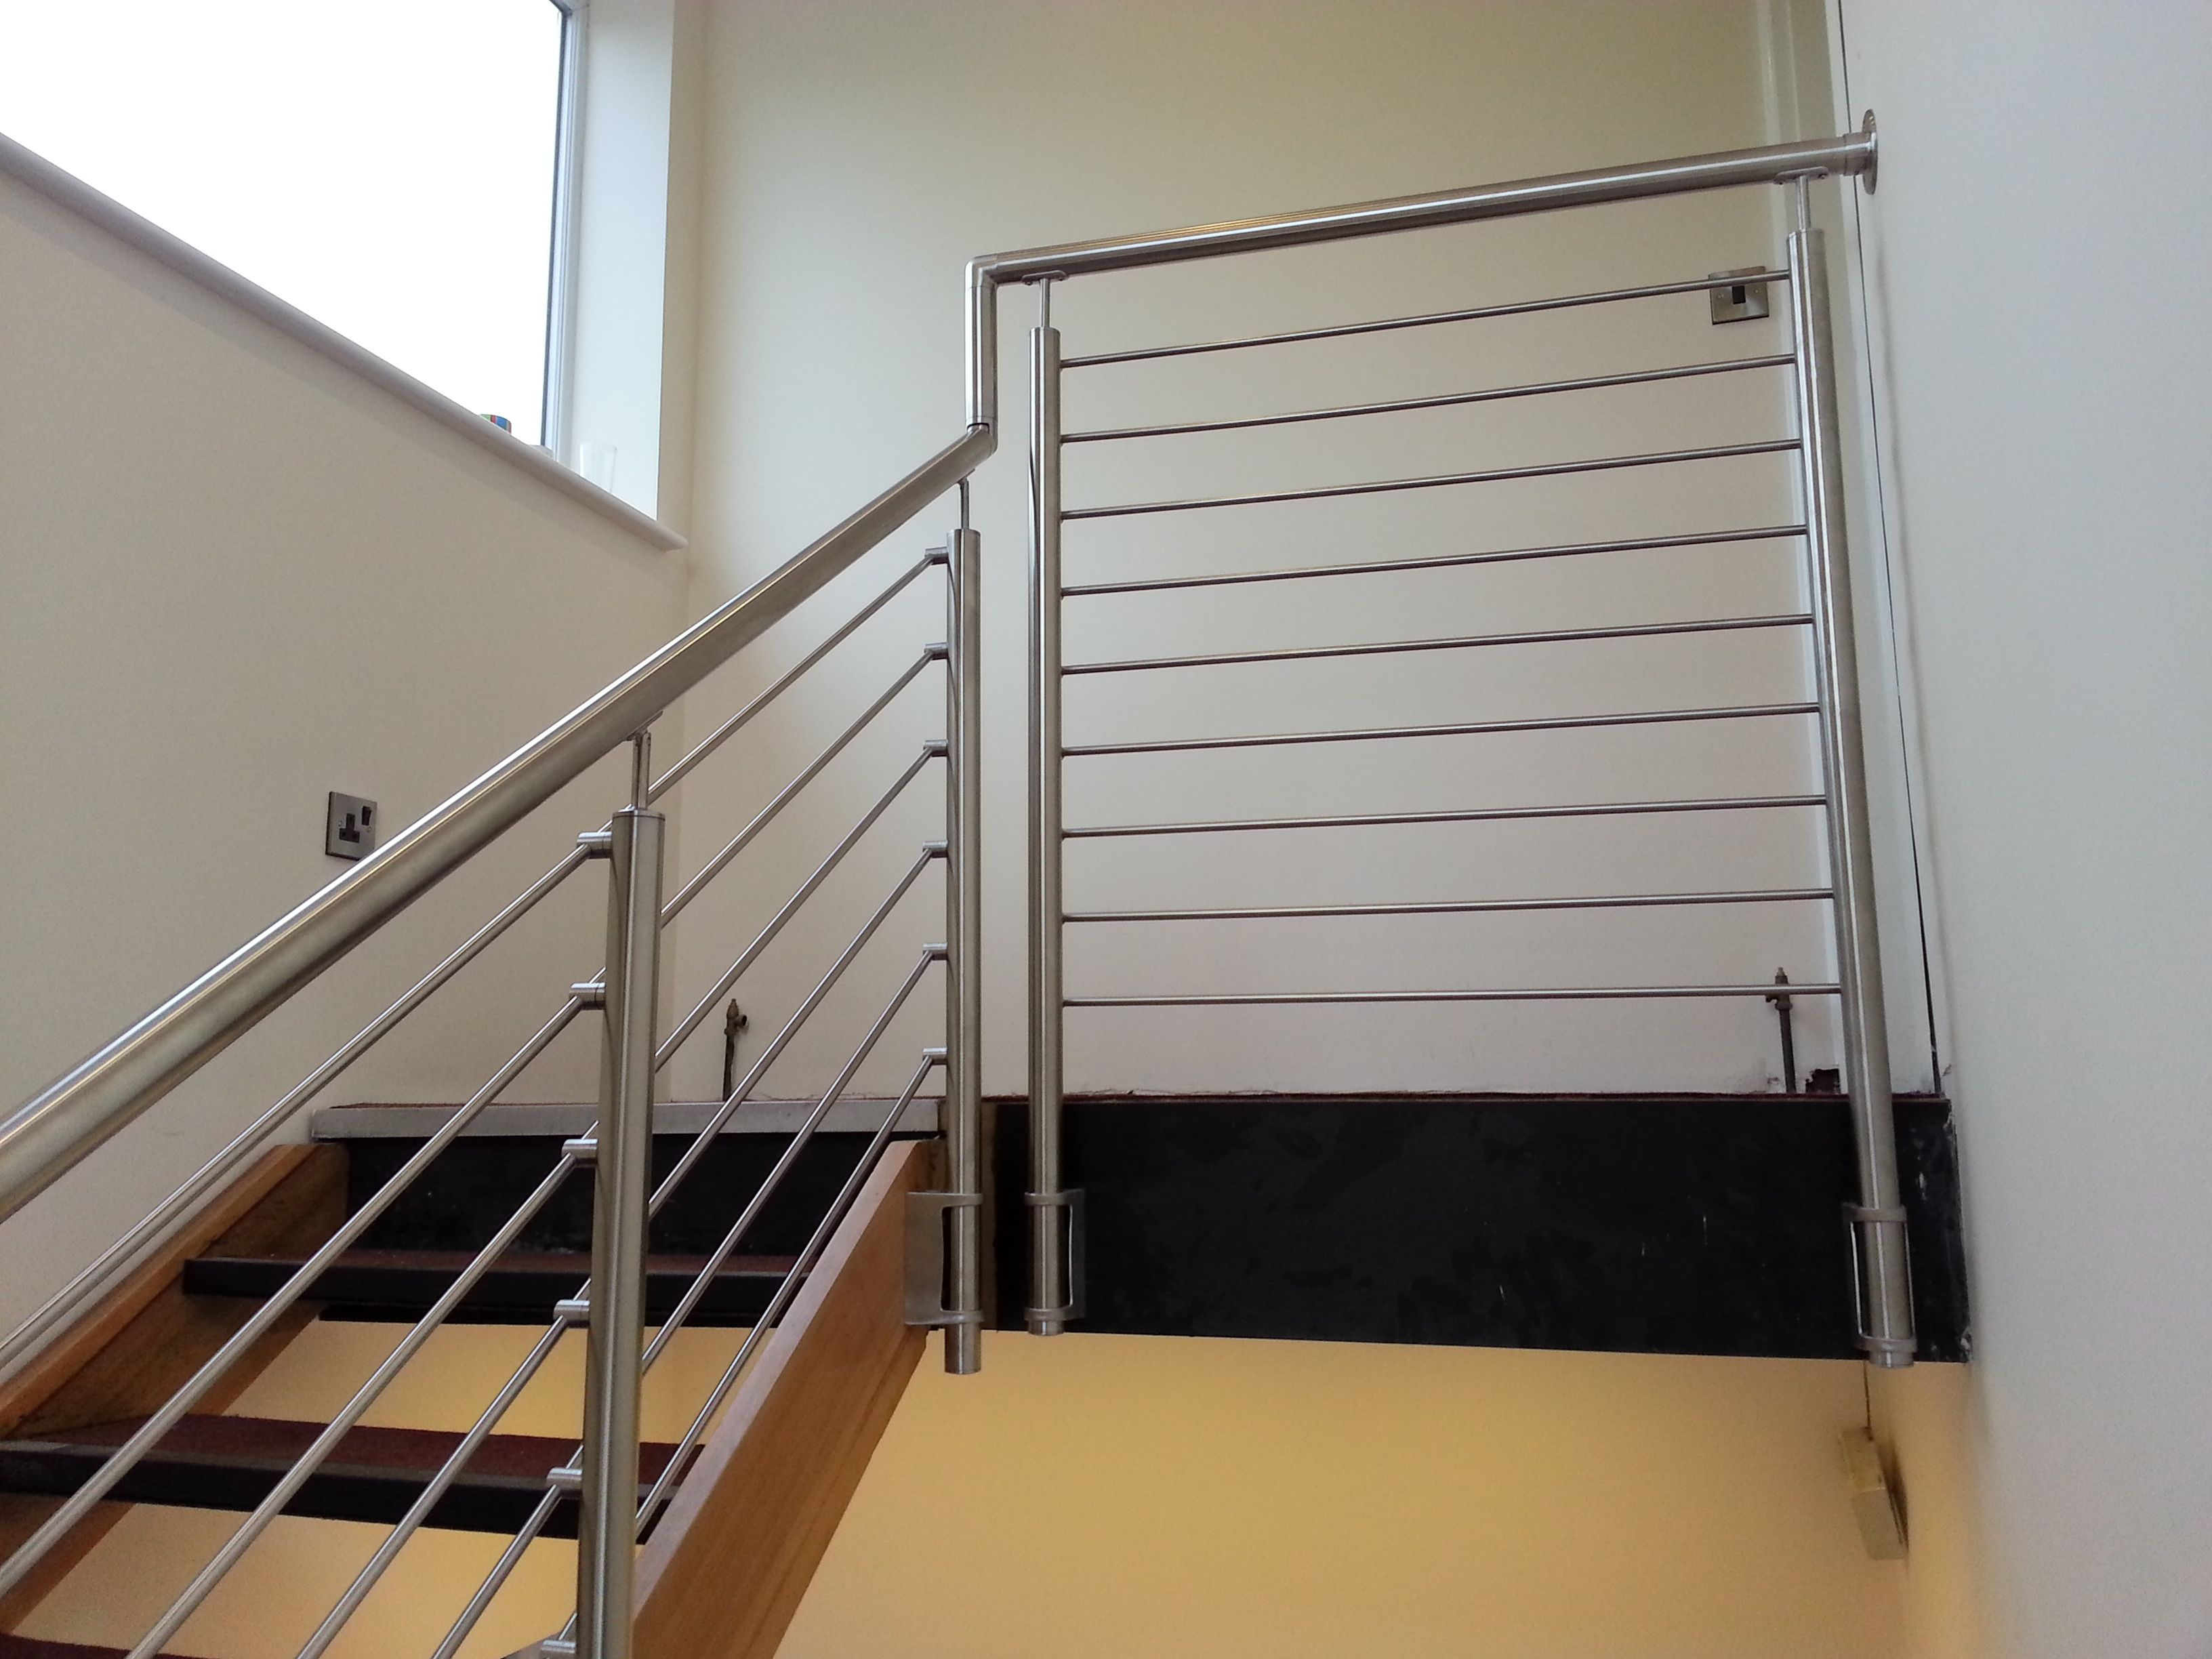 Stainless Steel Posts with a Bar infill provides a modern design for any  office space.